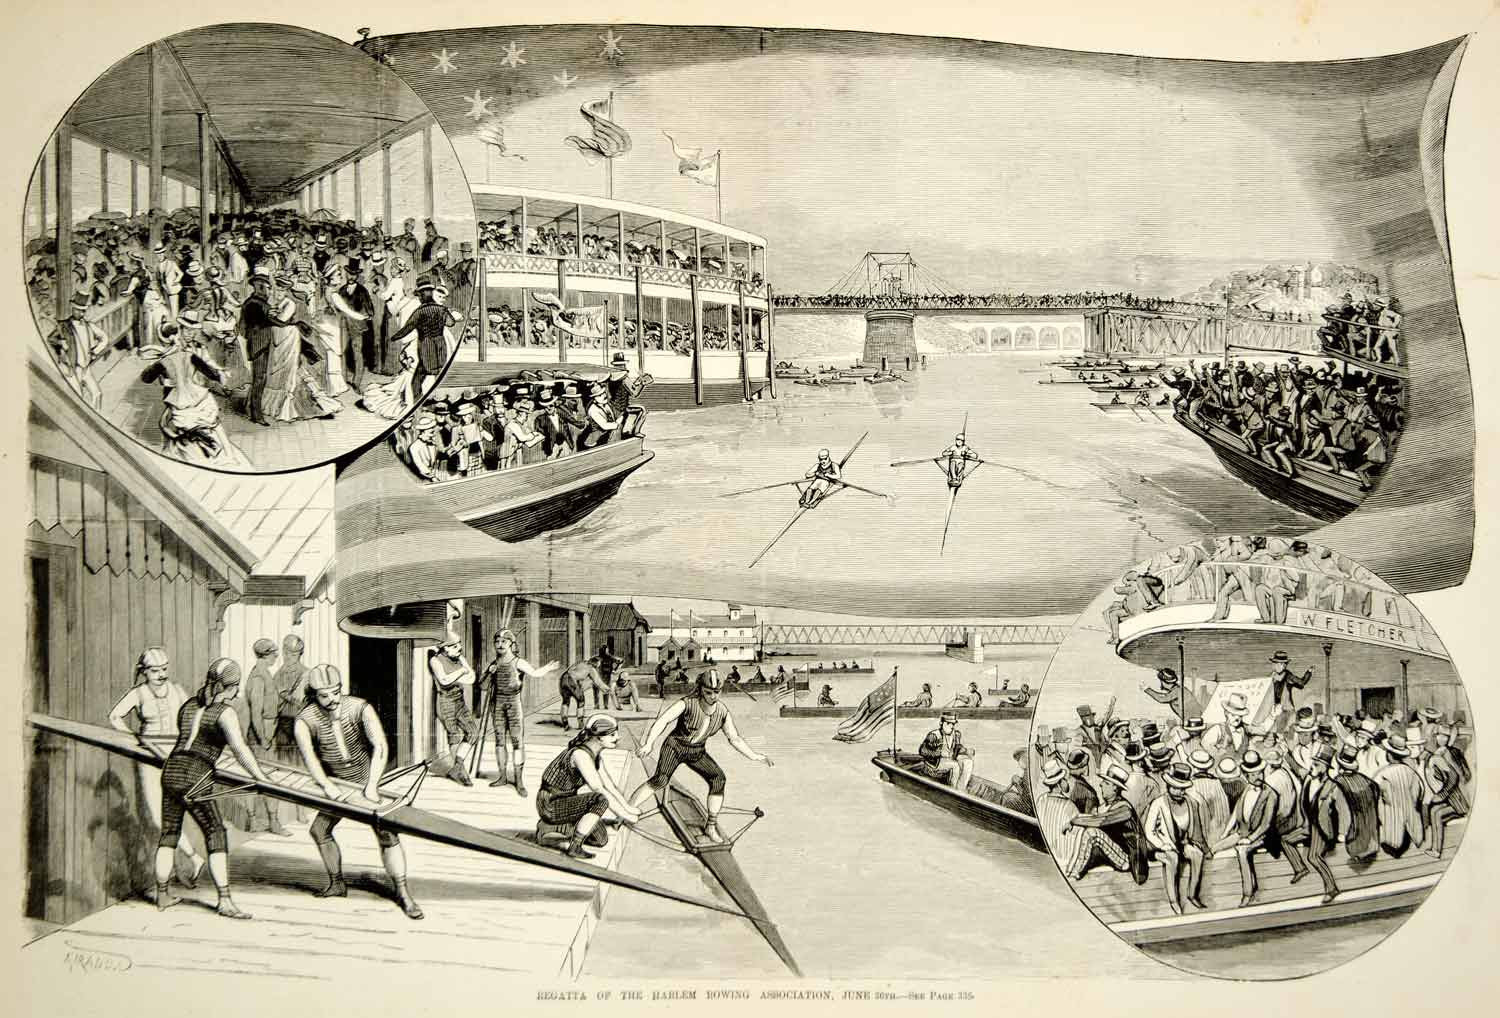 1875 Wood Engraving Harlem Rowing Regatta Boat Race Sculling Rowing Spectators - Period Paper